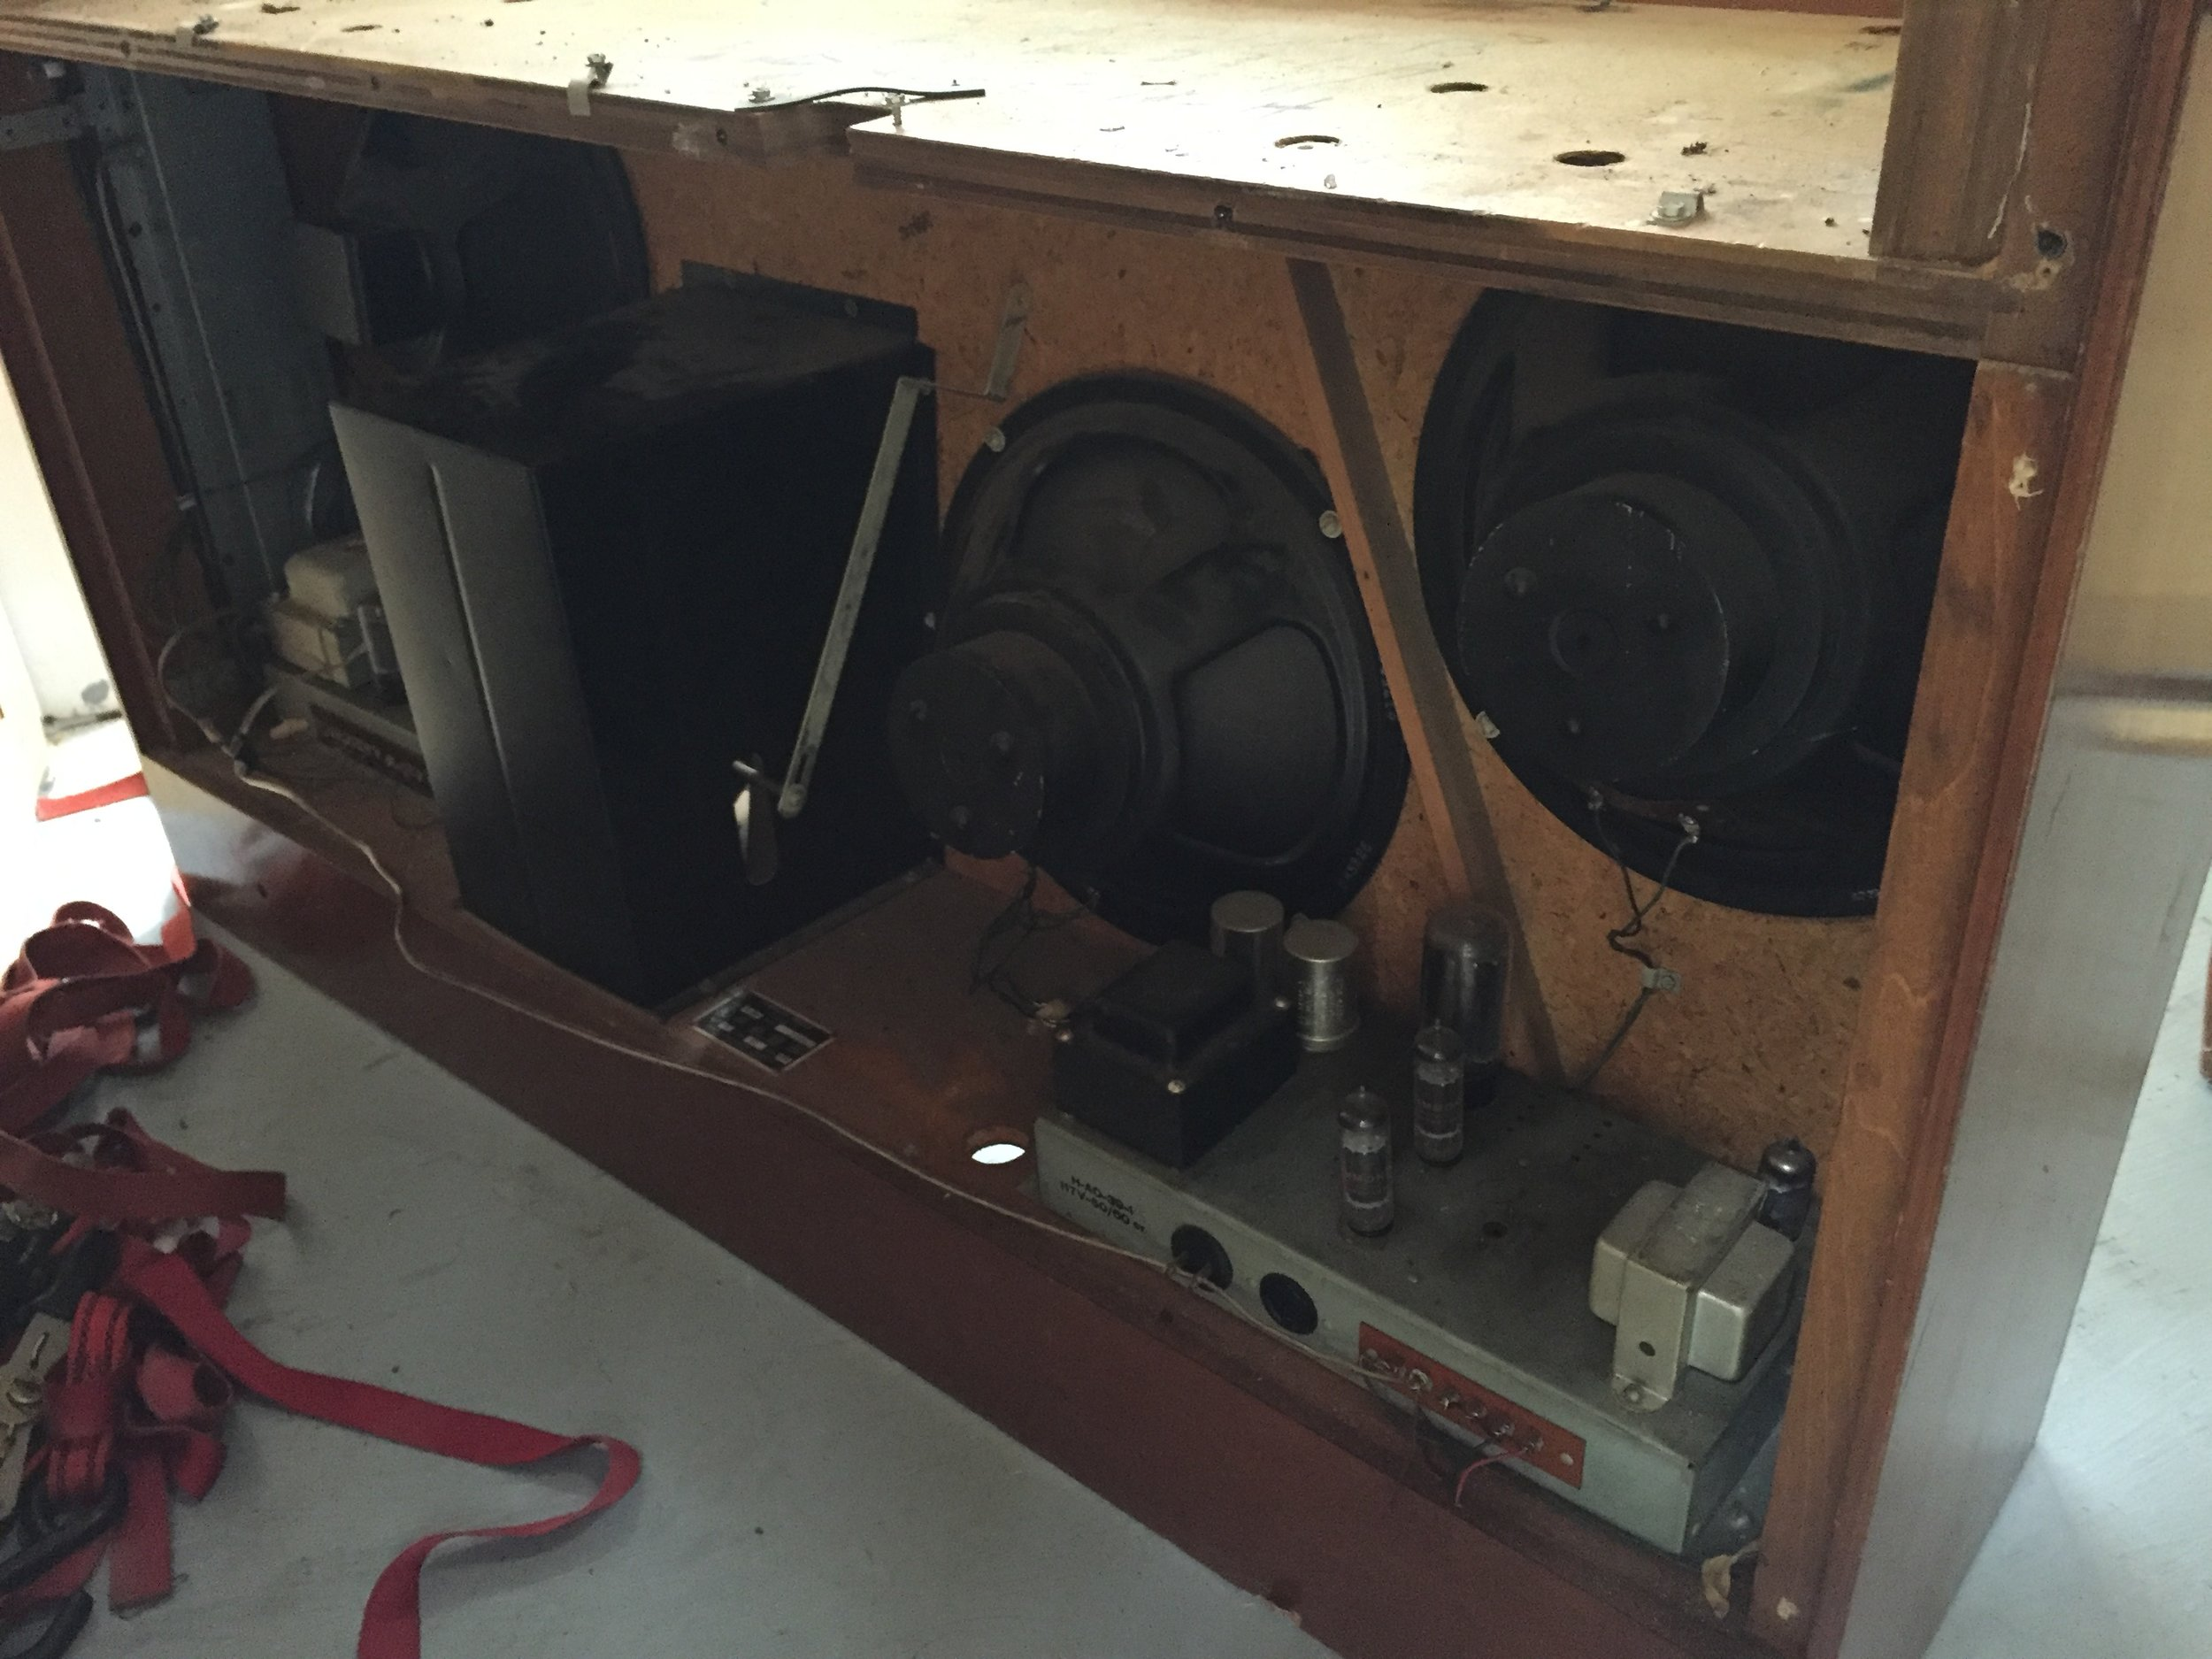 I decided to make a speaker cab out of the three vintage woofers, the two internal tube amps, and spring reverb, since it was such a sweet sounding system.